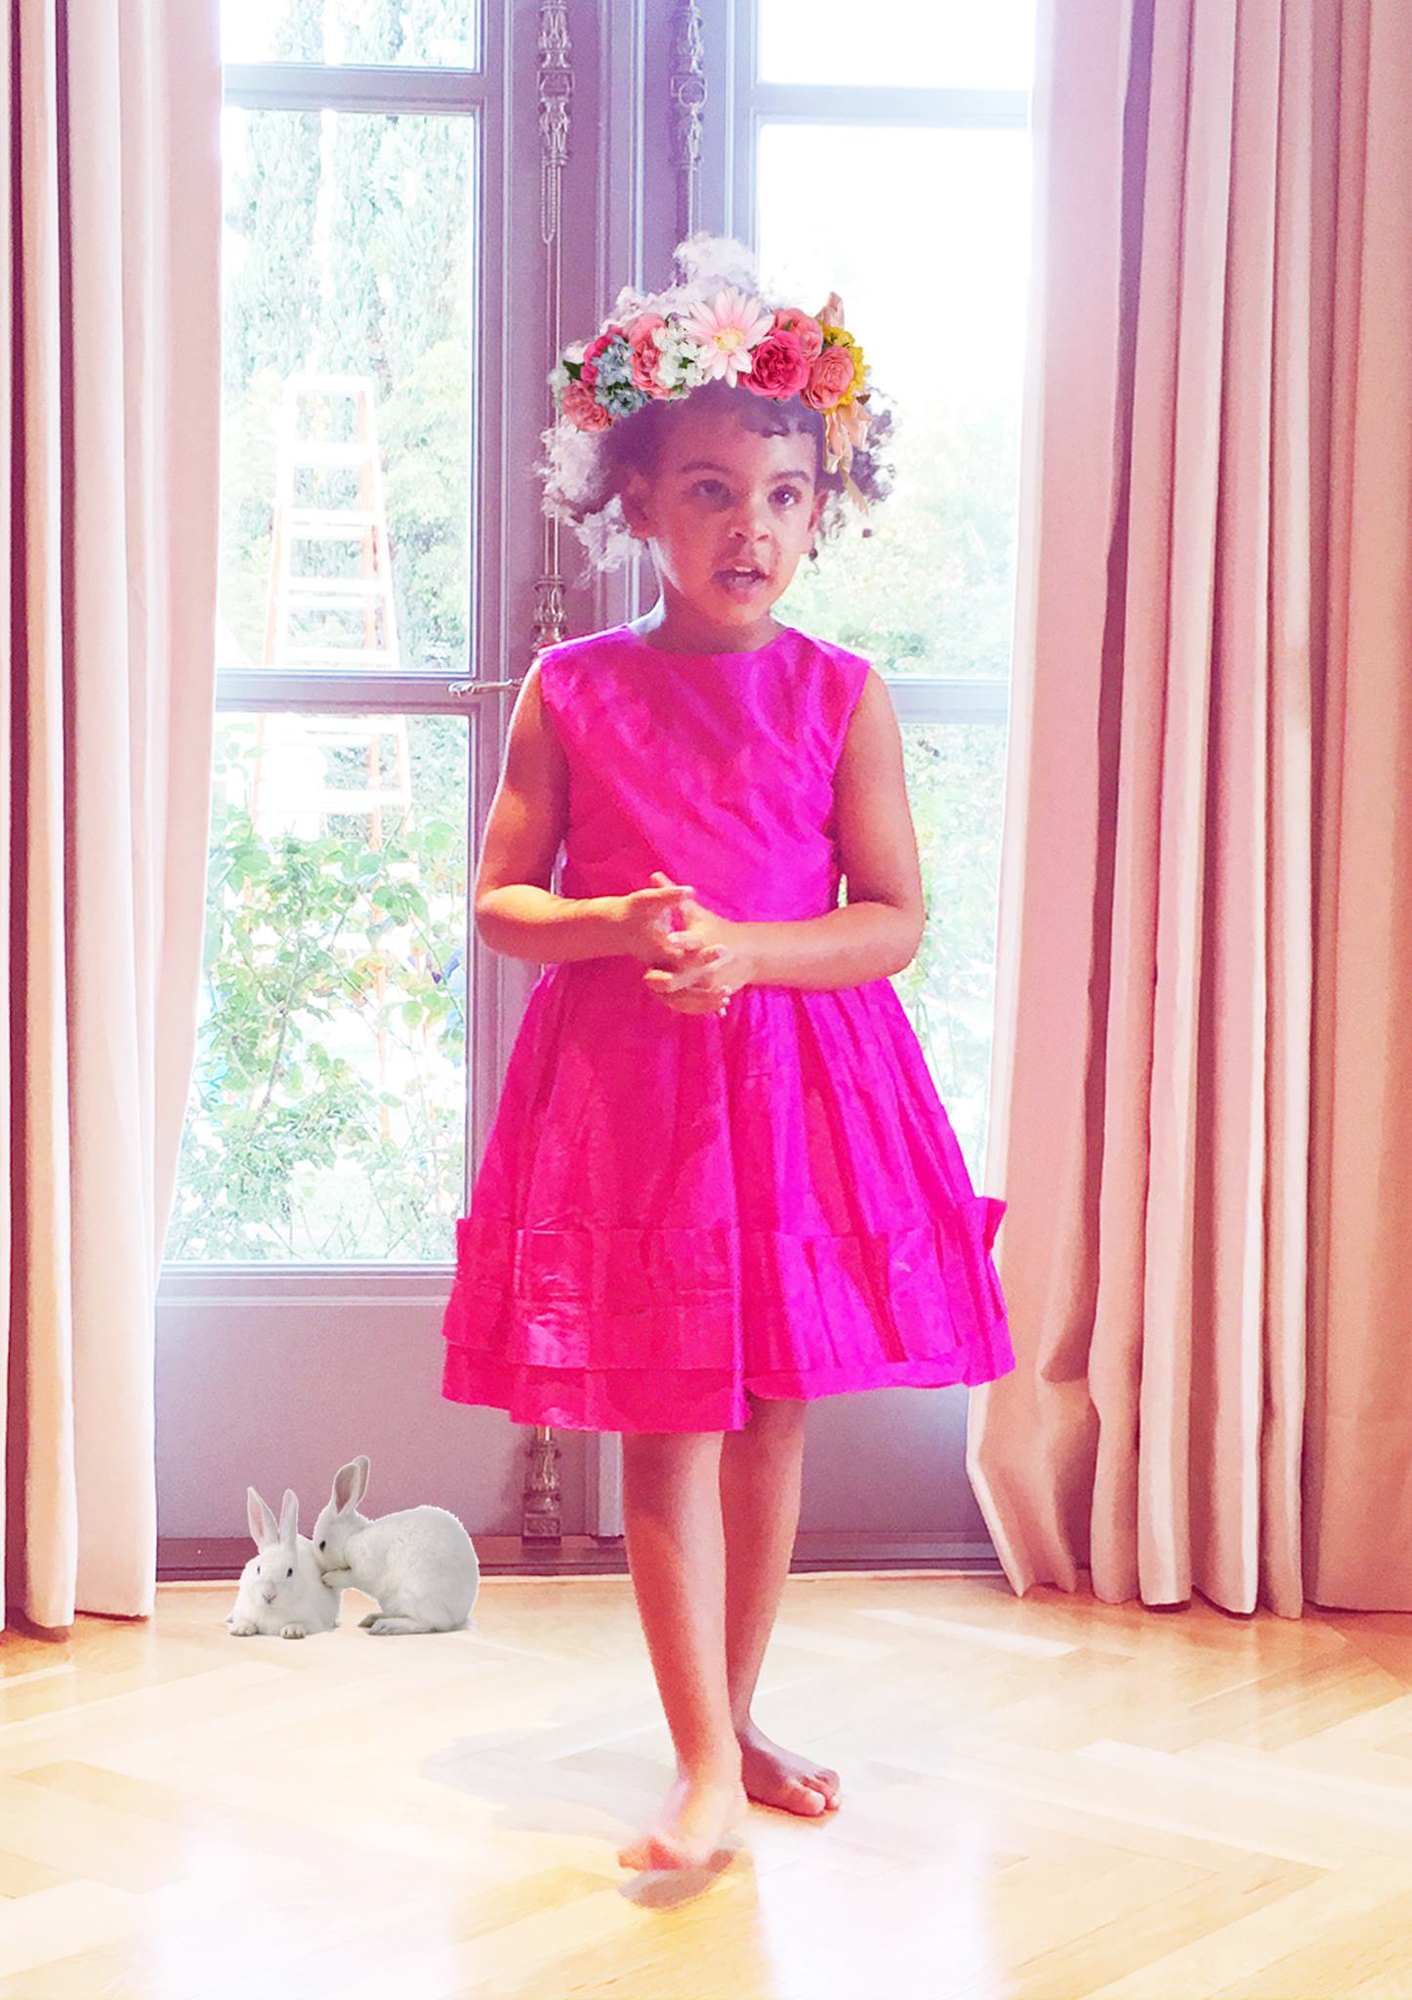 Beyoncé and Blue Ivy Welcome Spring with a Bunny-Filled Tea Party